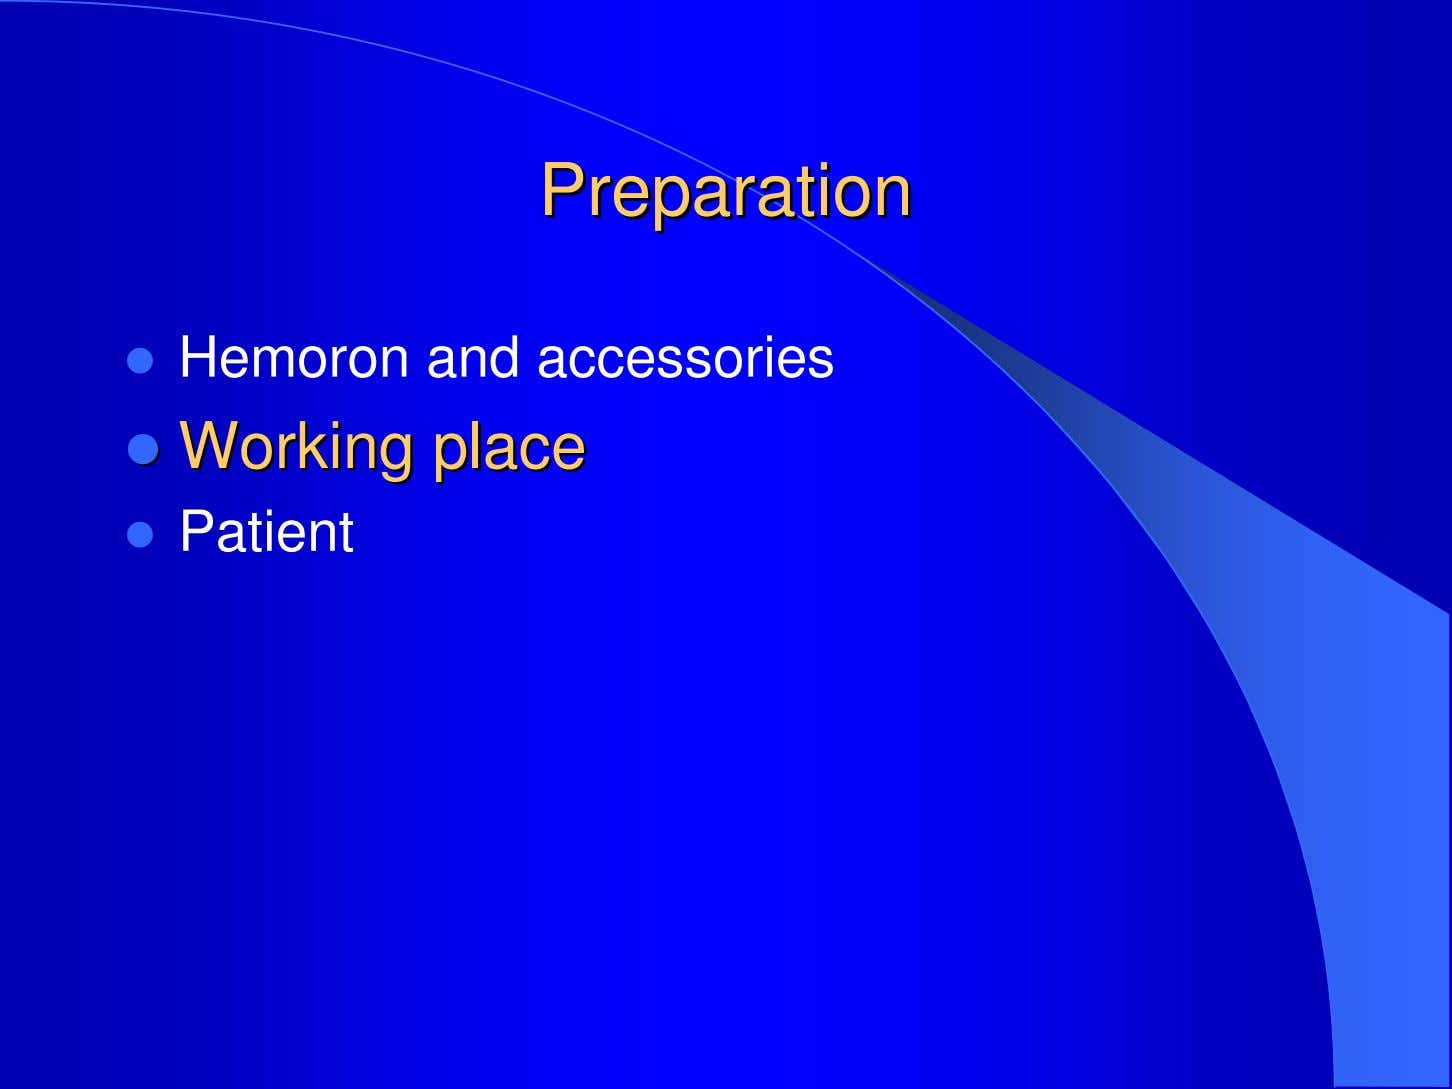 PreparationPreparation Hemoron and accessories Working Working place place Patient